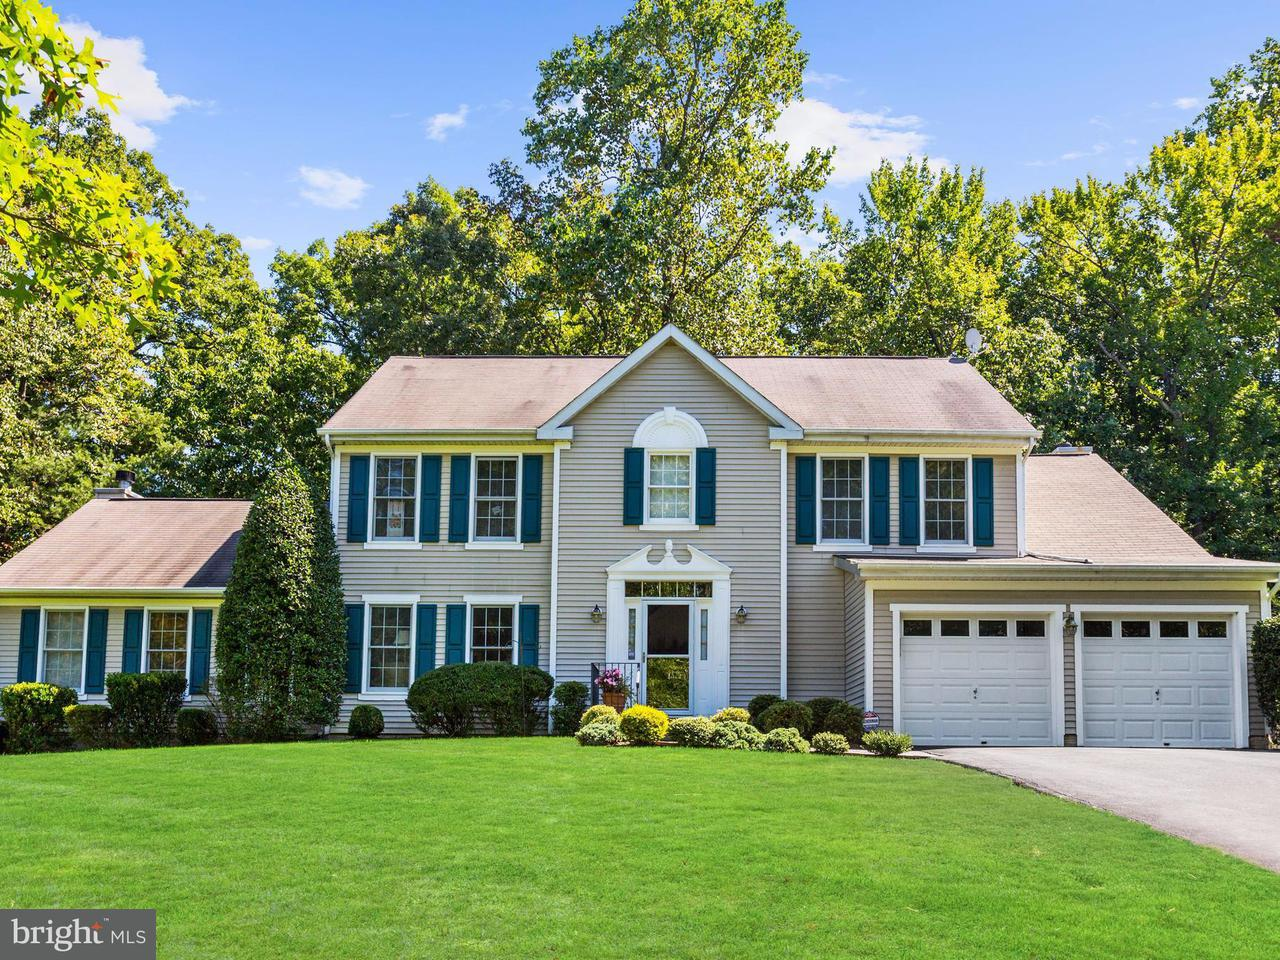 Maison unifamiliale pour l Vente à 3248 BRECKENRIDGE WAY 3248 BRECKENRIDGE WAY Riva, Maryland 21140 États-Unis